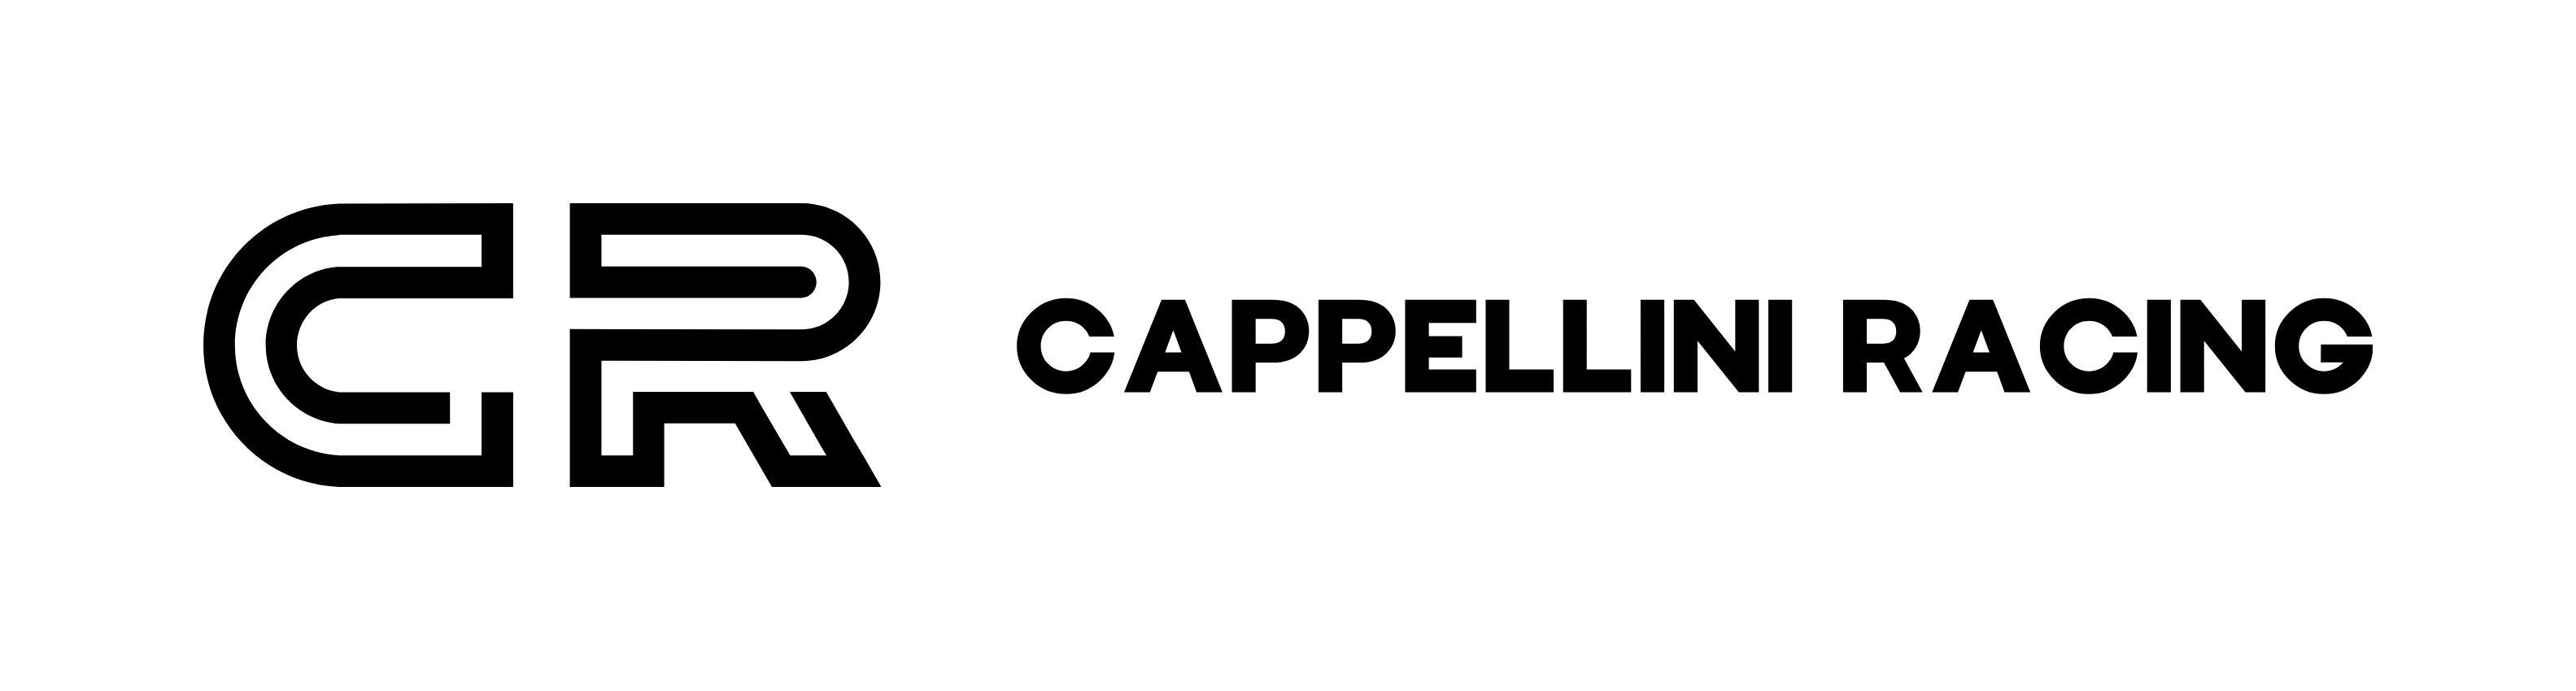 Cappellini-Racing-new-logo-White